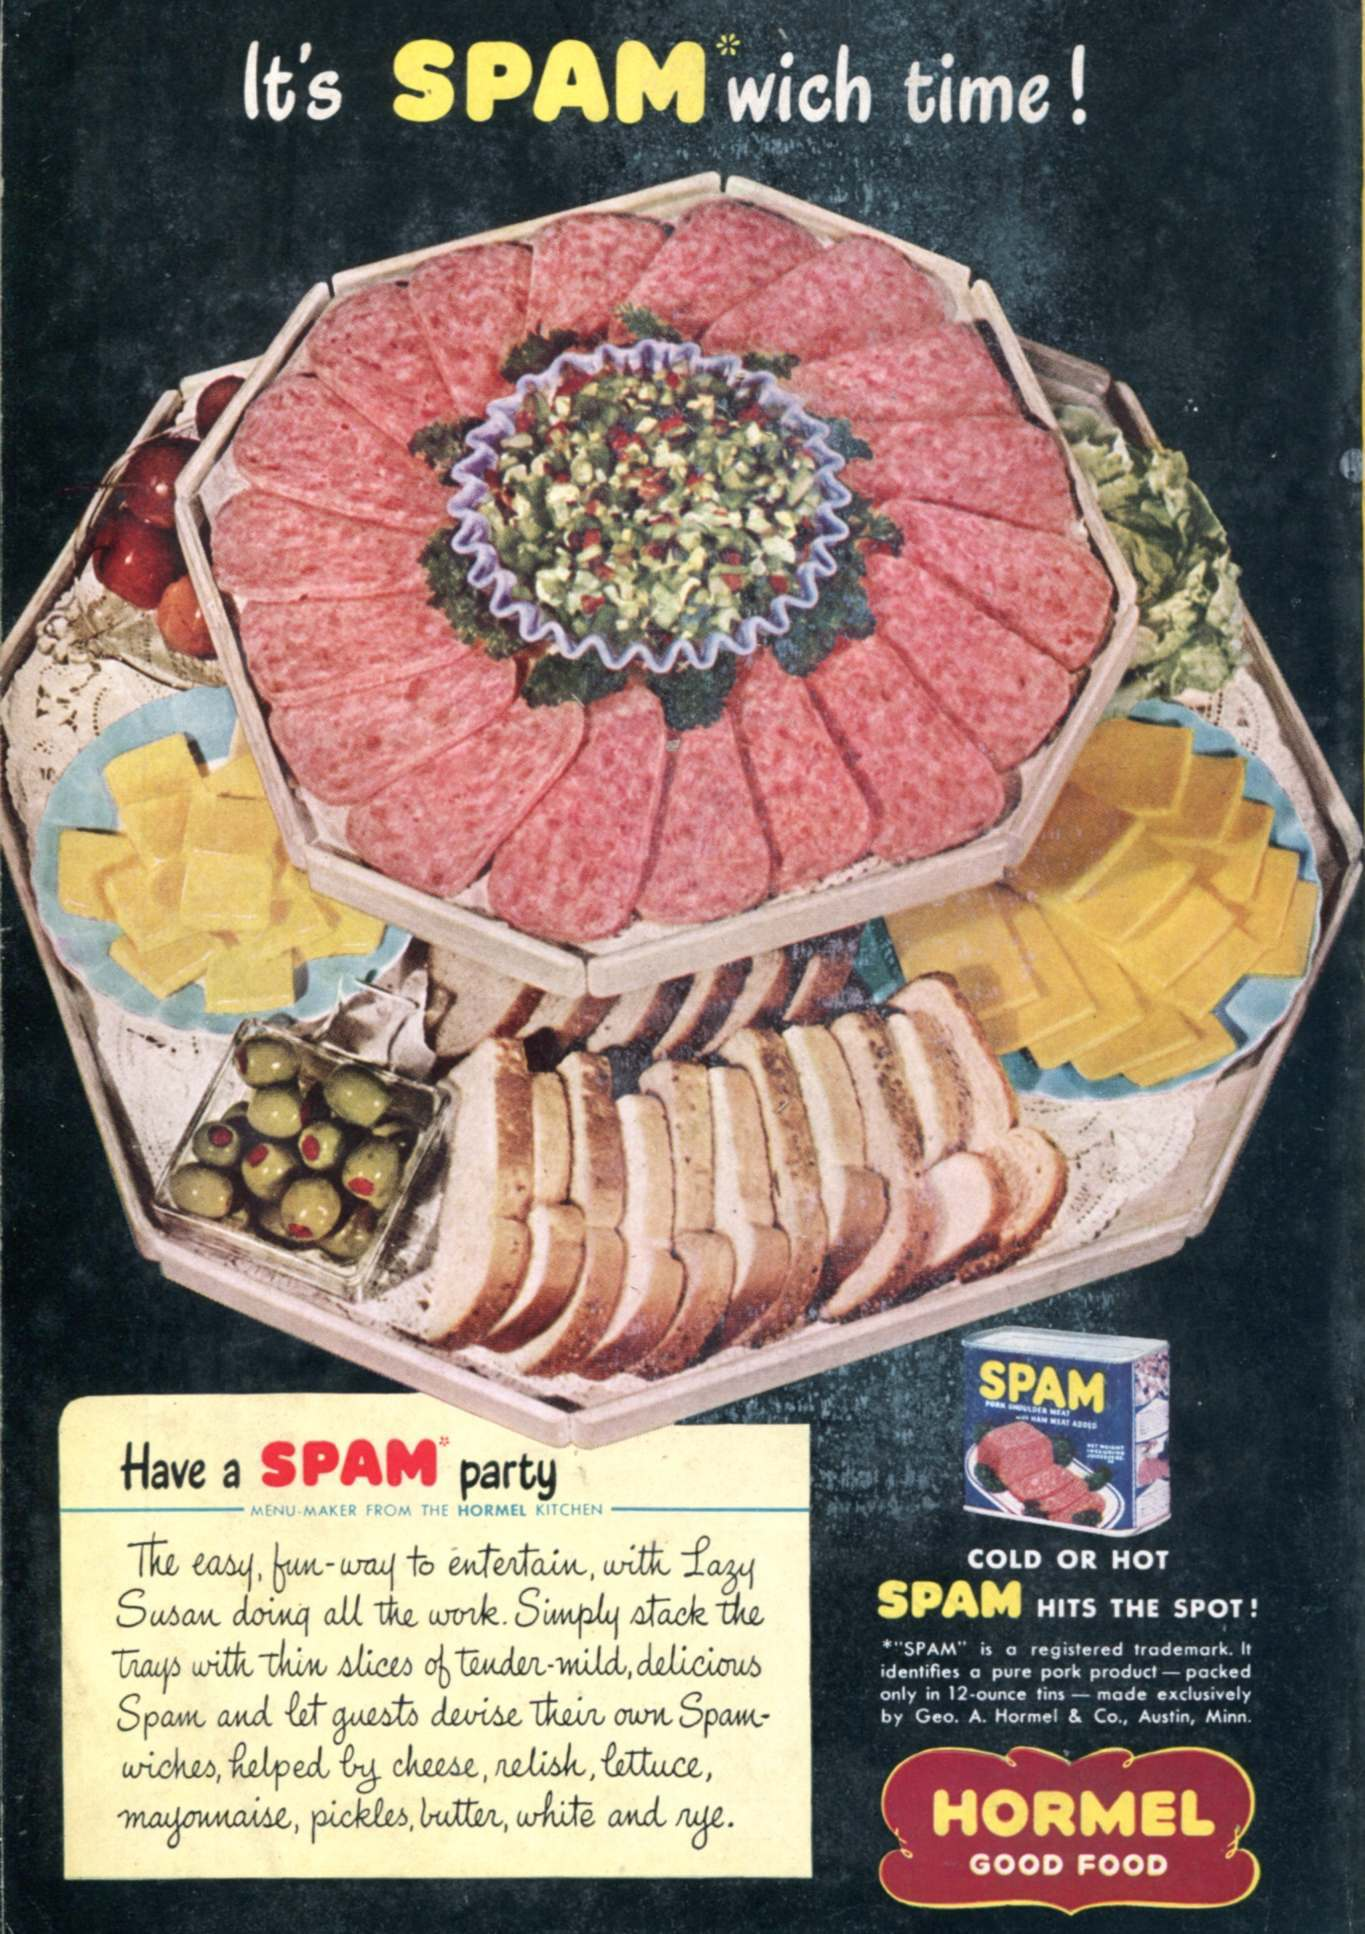 Spam Hormel Food Advertising National Geographic July 1947